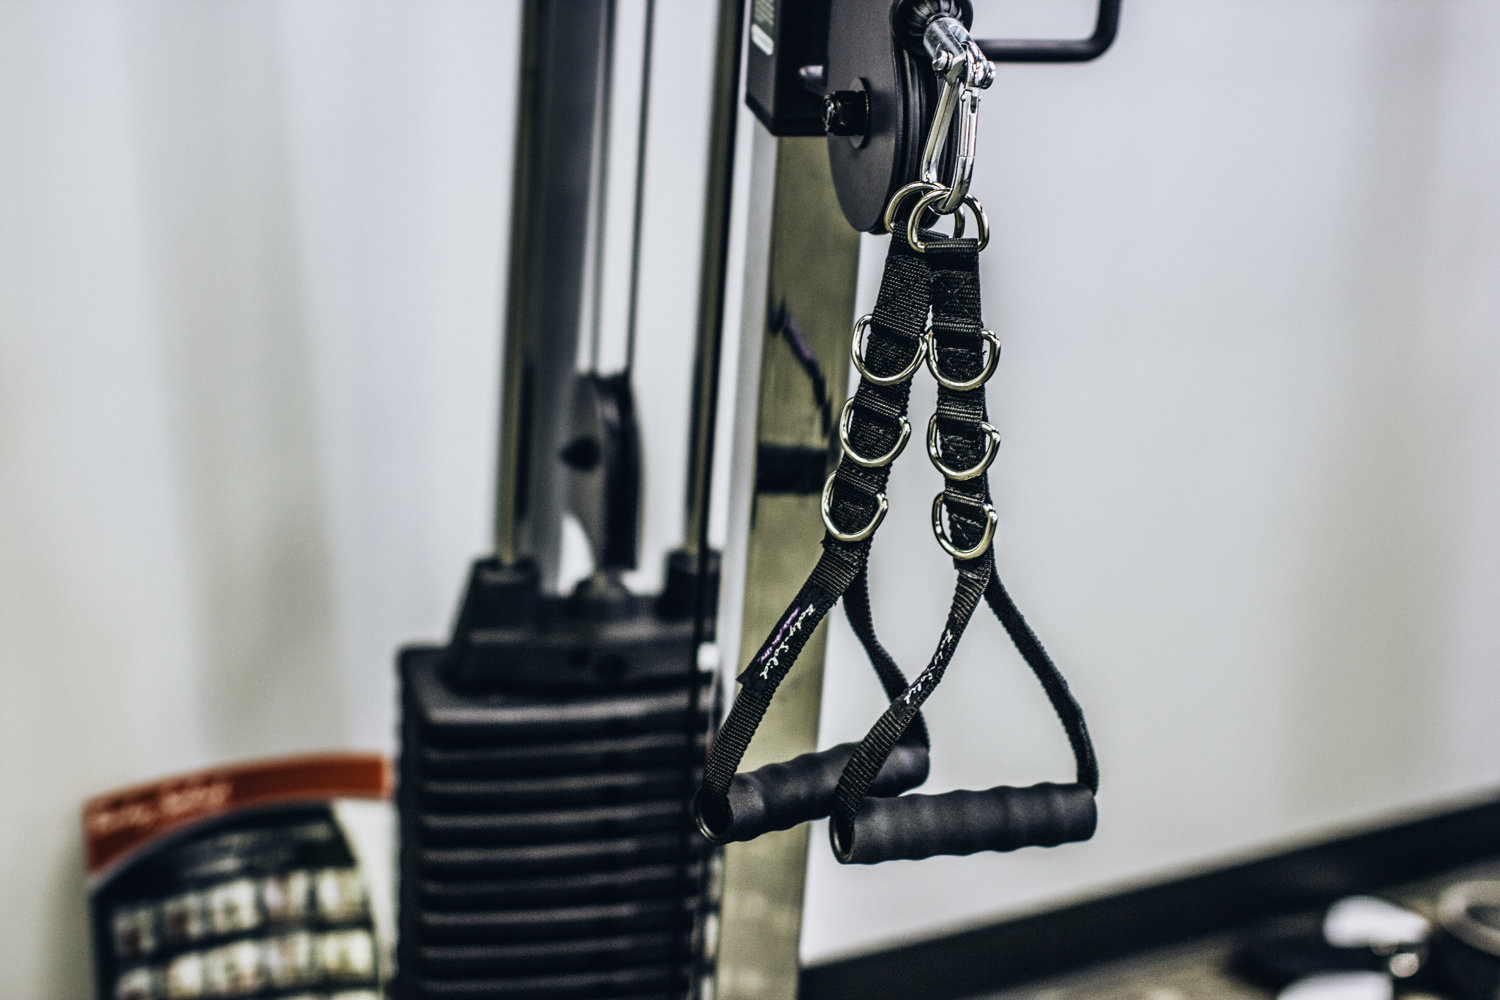 flex5-fitness-personal-training-new-functional-trainer-station-pulleys.jpg